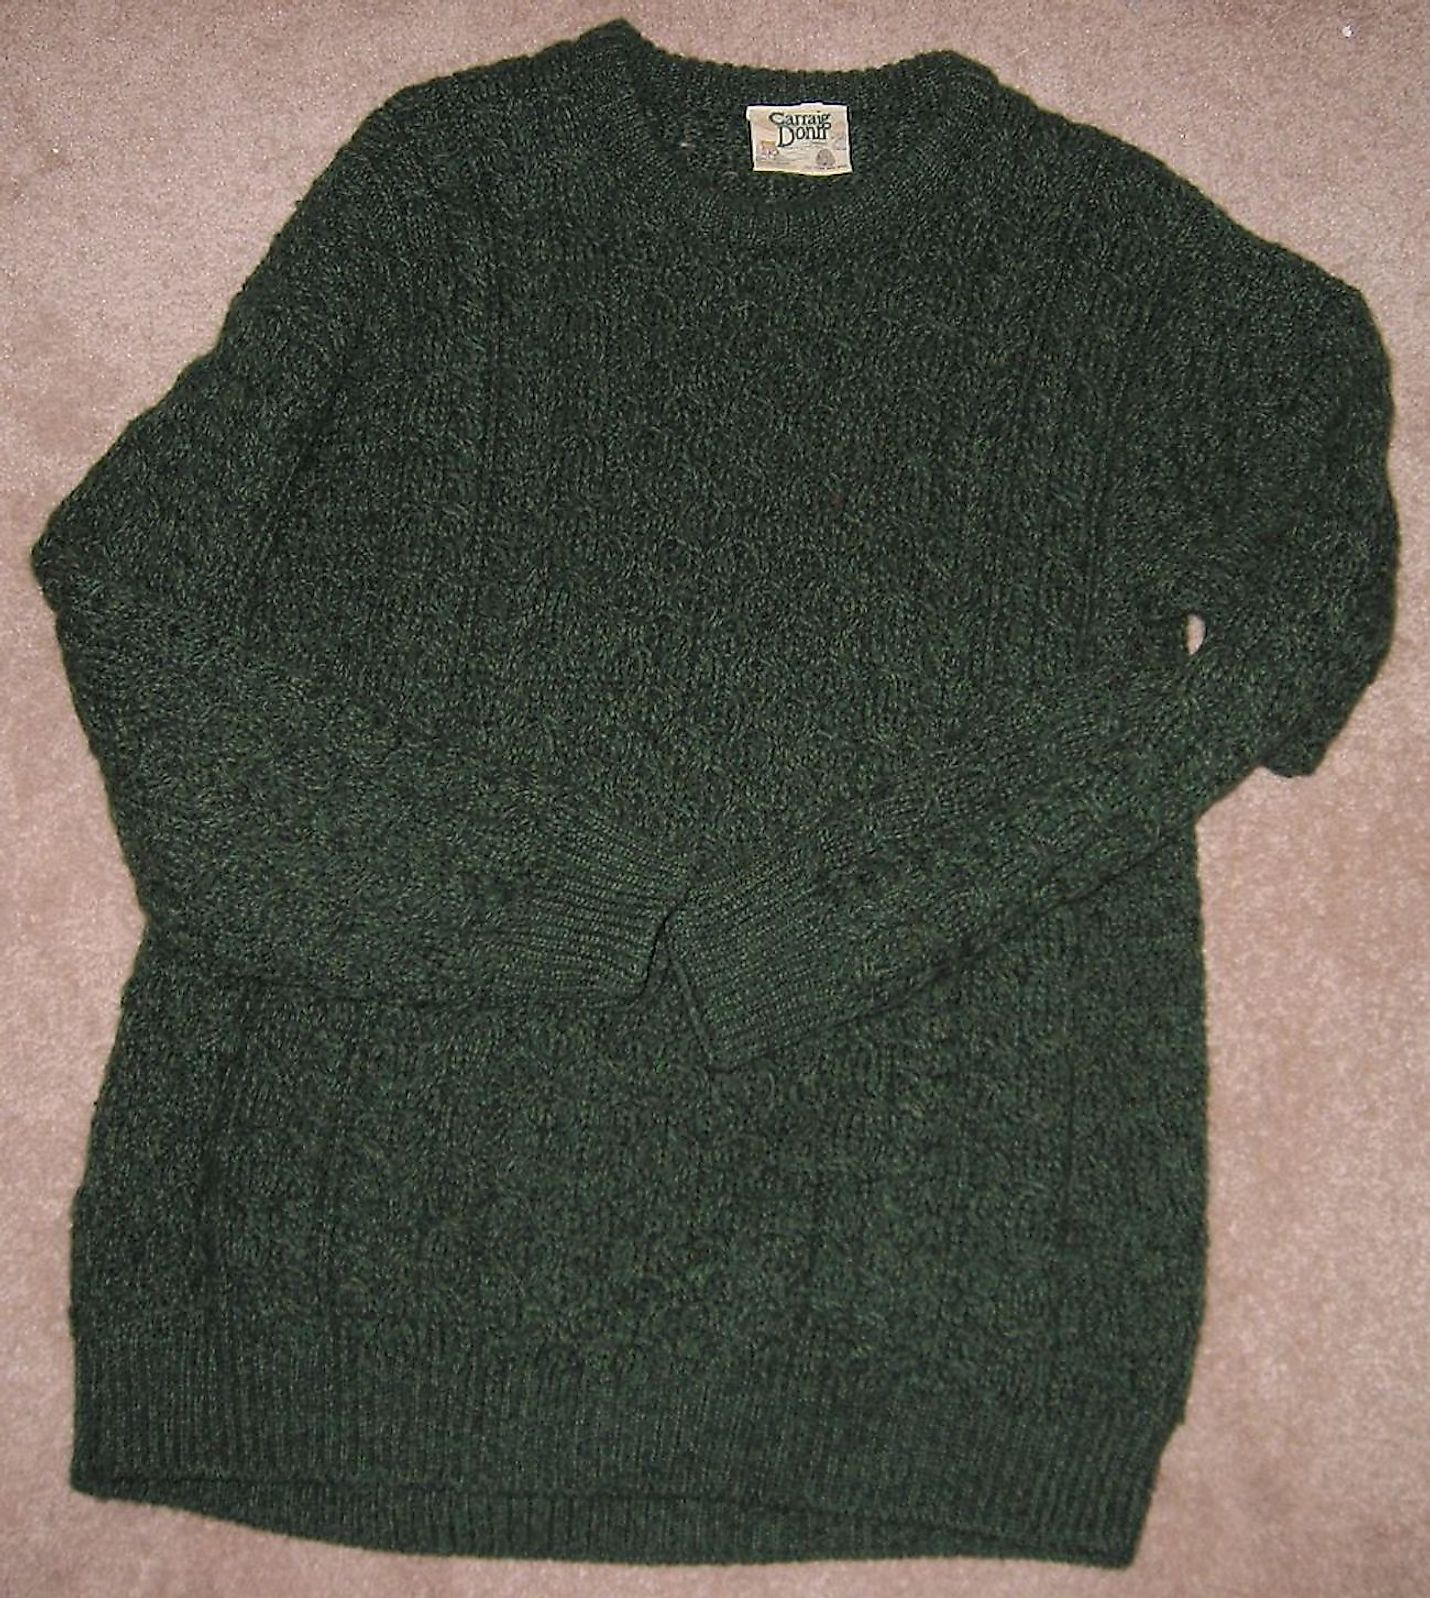 "Aran Sweater, green, made by ""Carraig Donn"", Ireland. Image credit: User:Smee/Public domain"